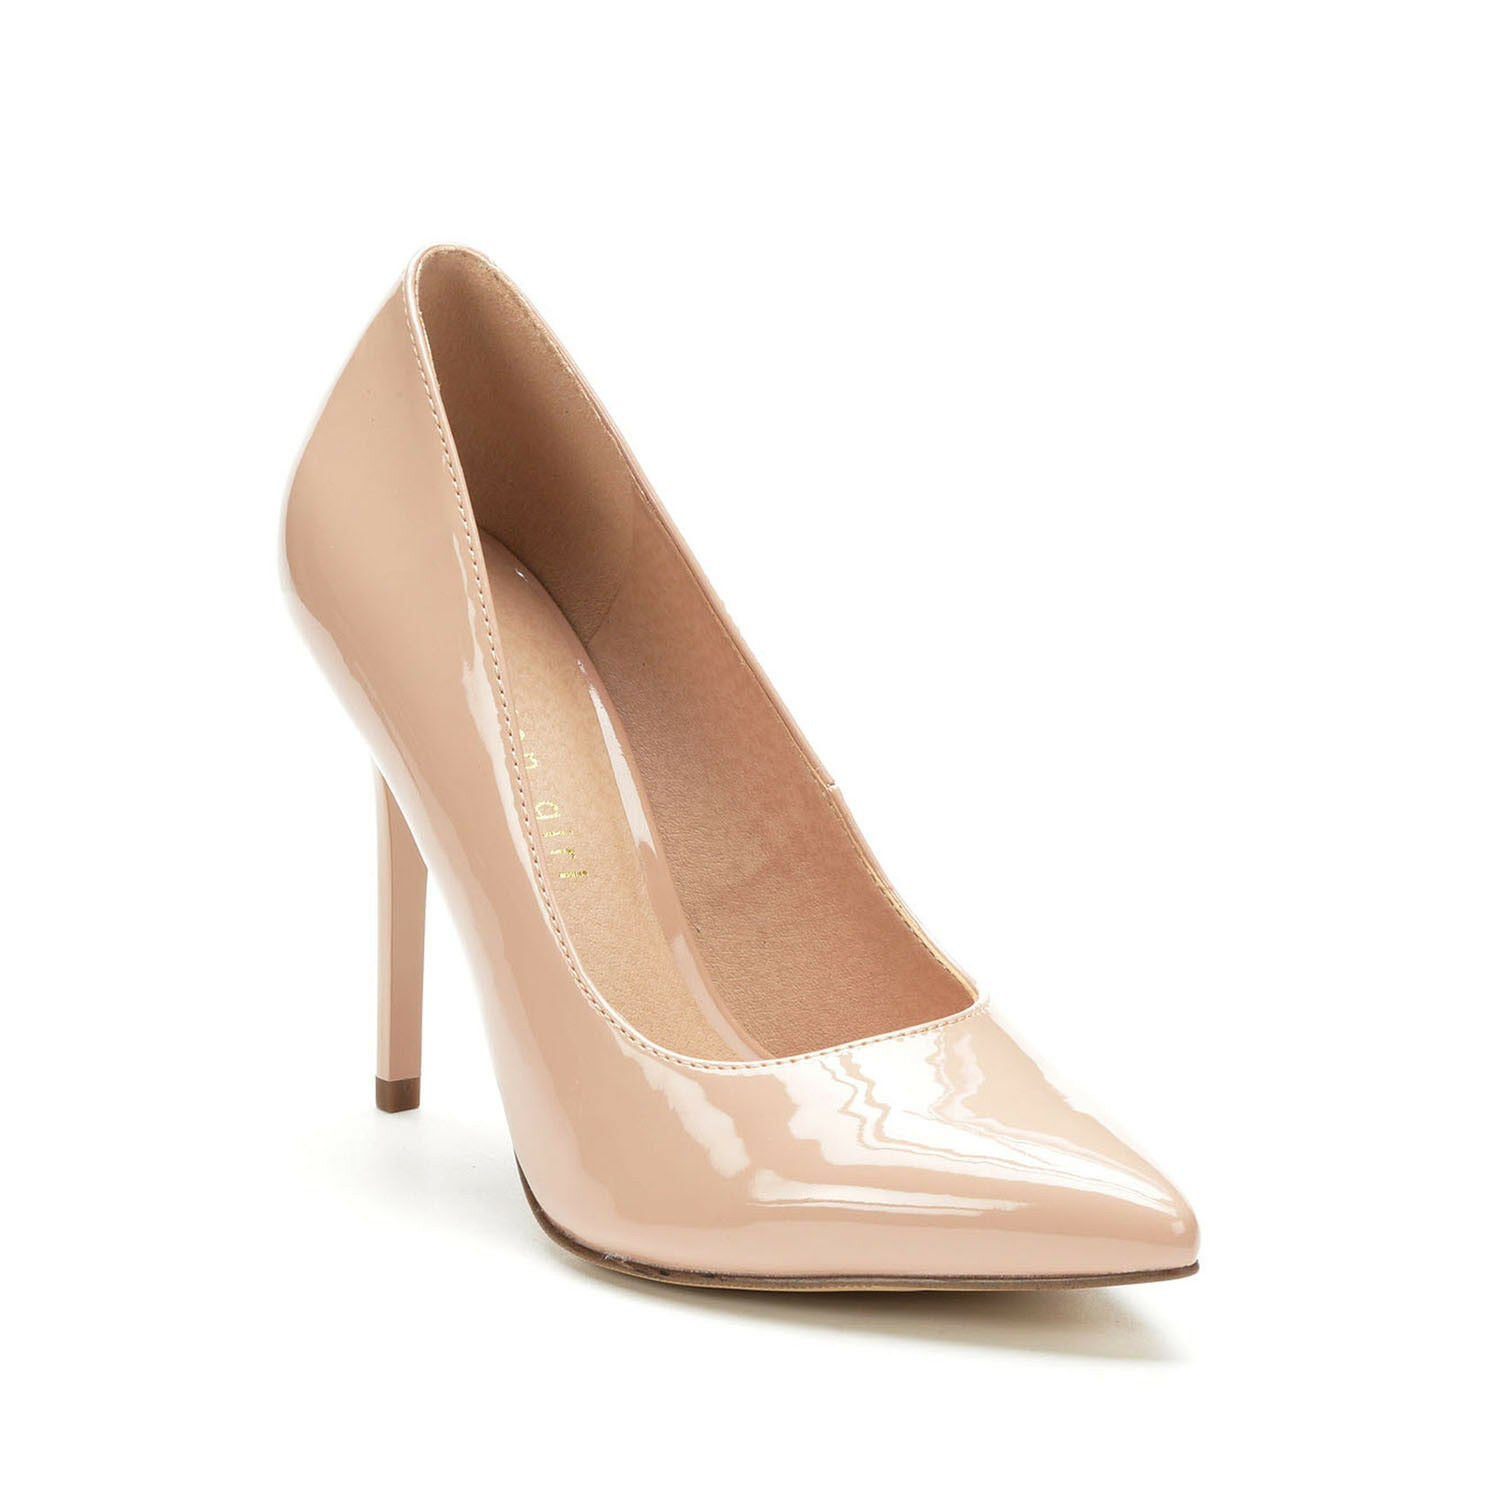 MADDEN GIRL BLUSH PATENT POINTED TOE PUMP